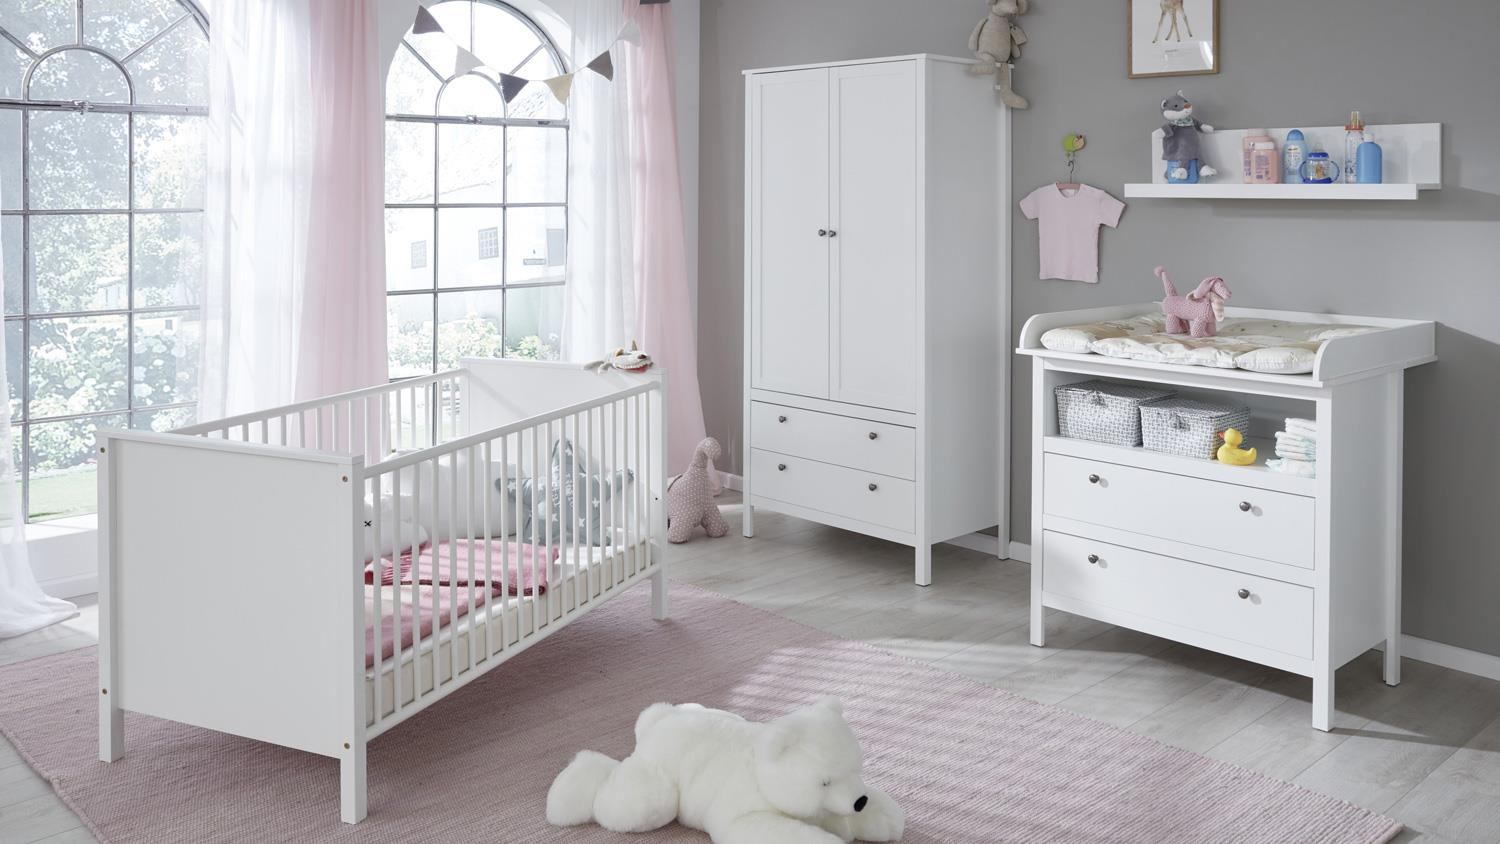 babyzimmer set ole kinderzimmer babybett schrank regal. Black Bedroom Furniture Sets. Home Design Ideas